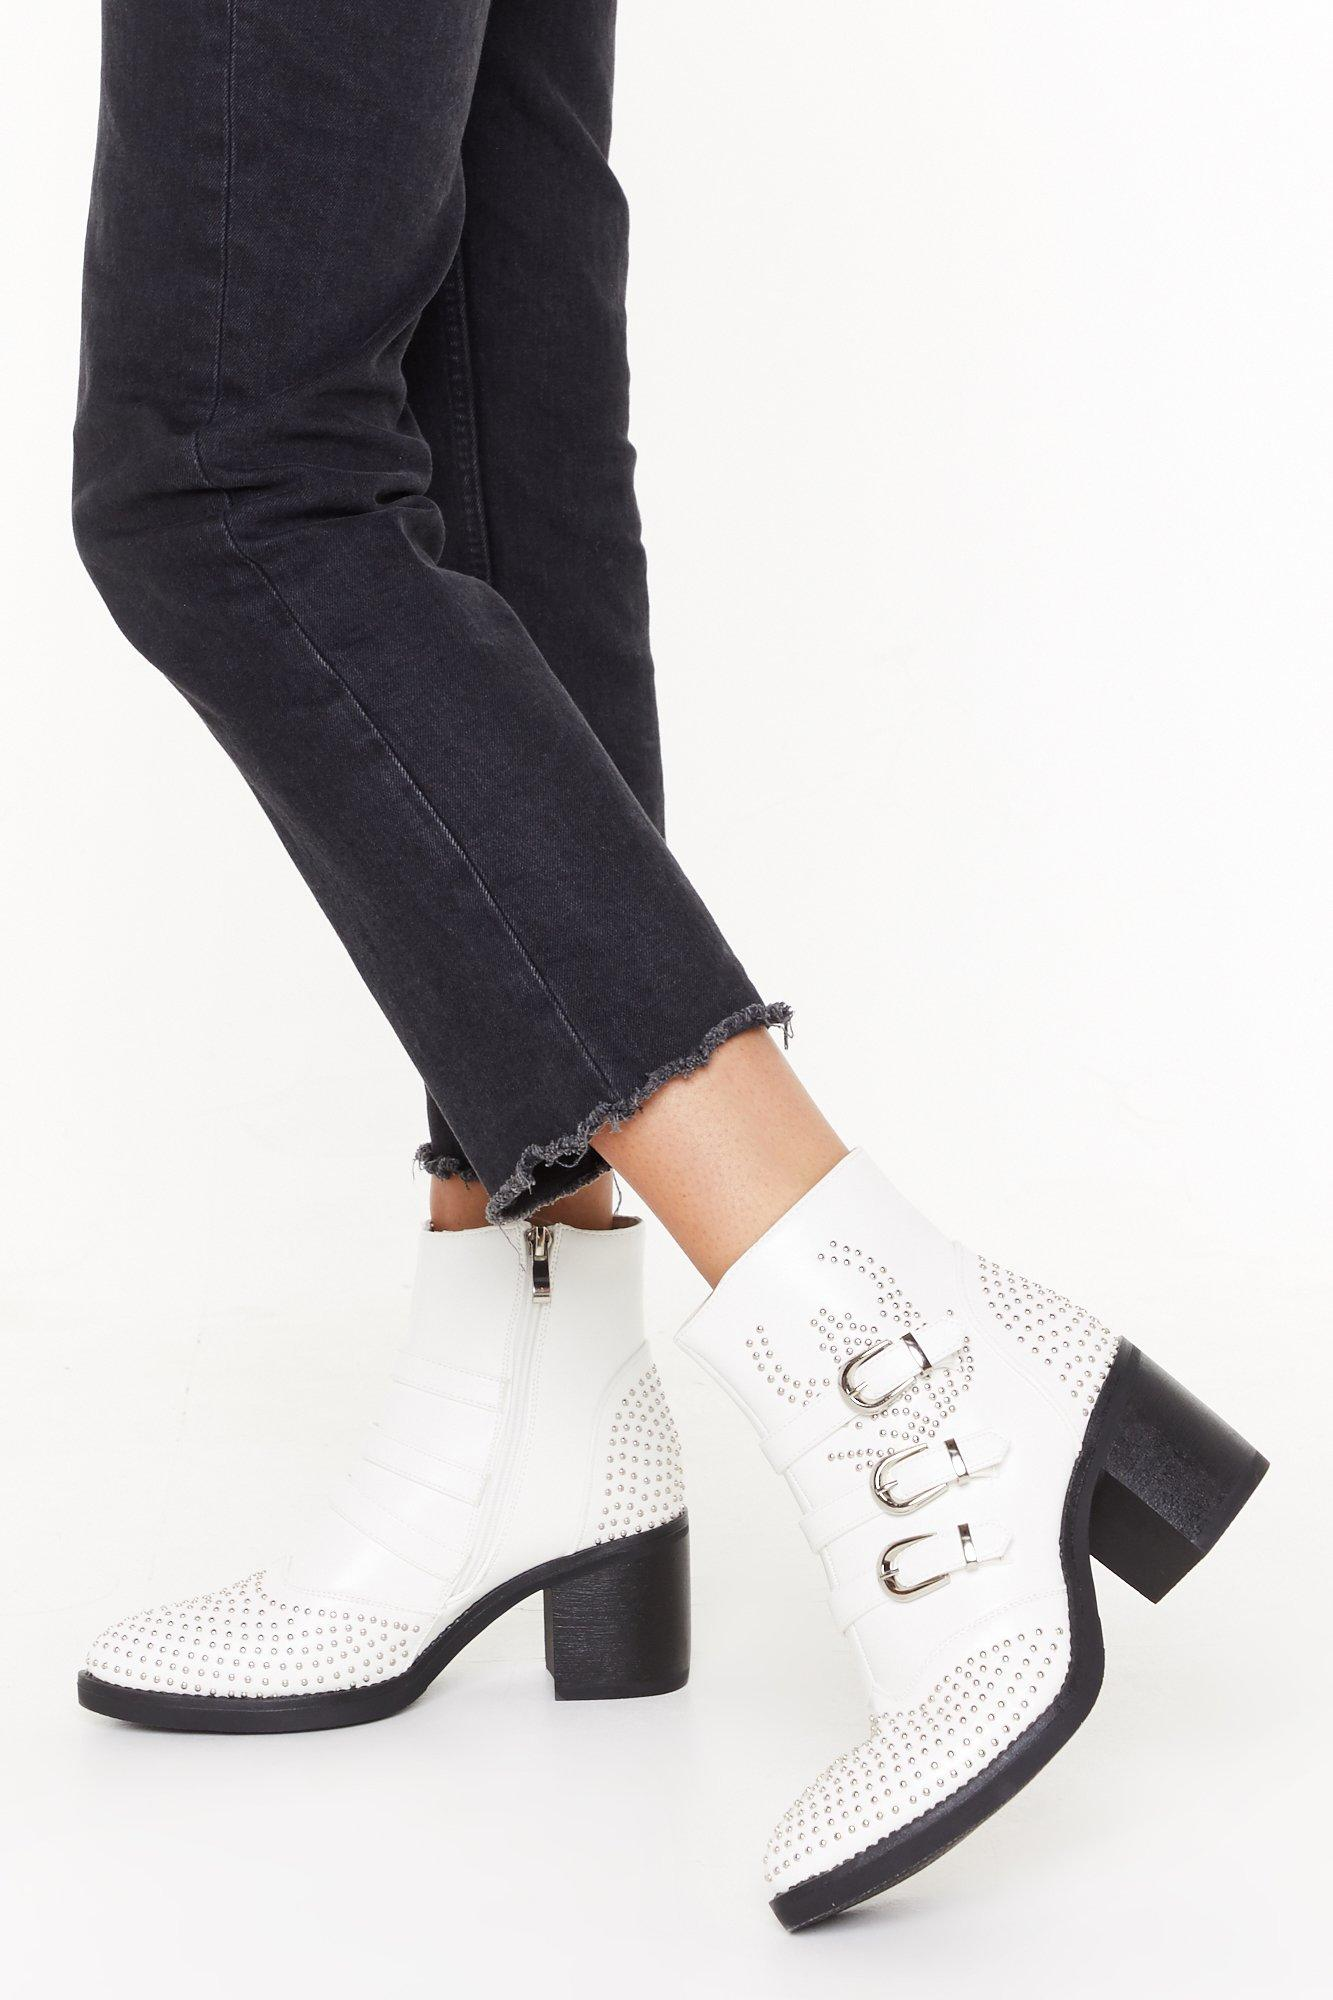 All Stud Girls Go to Hell Faux Leather Boots   Nasty Gal